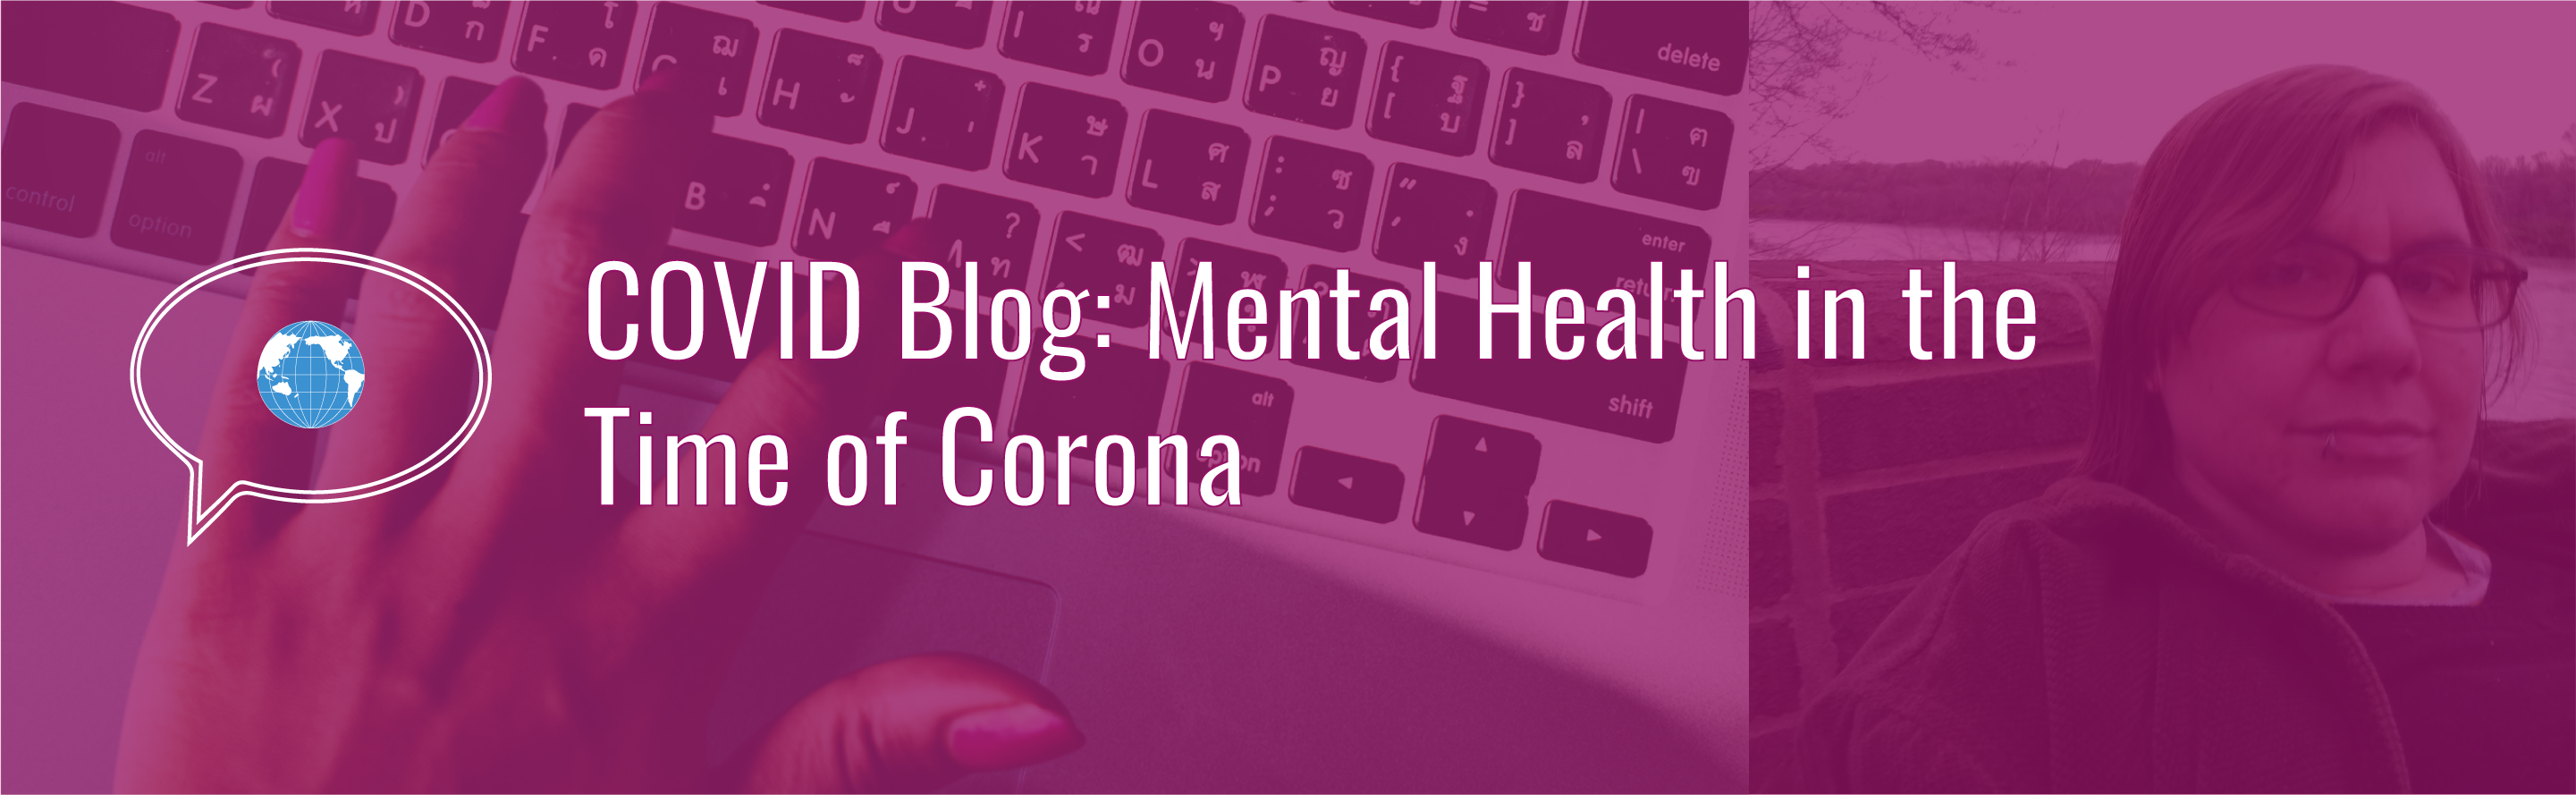 Banner with text: COVID Blog: Mental Health in the Time of Corona. Icon of speech bubble with WID globe. Background photo of a hand typing on a laptop computer and author photo with a magenta tint. Author photo of Kale Sastre, a white person with short brown hair, glasses, and a silver lip ring.